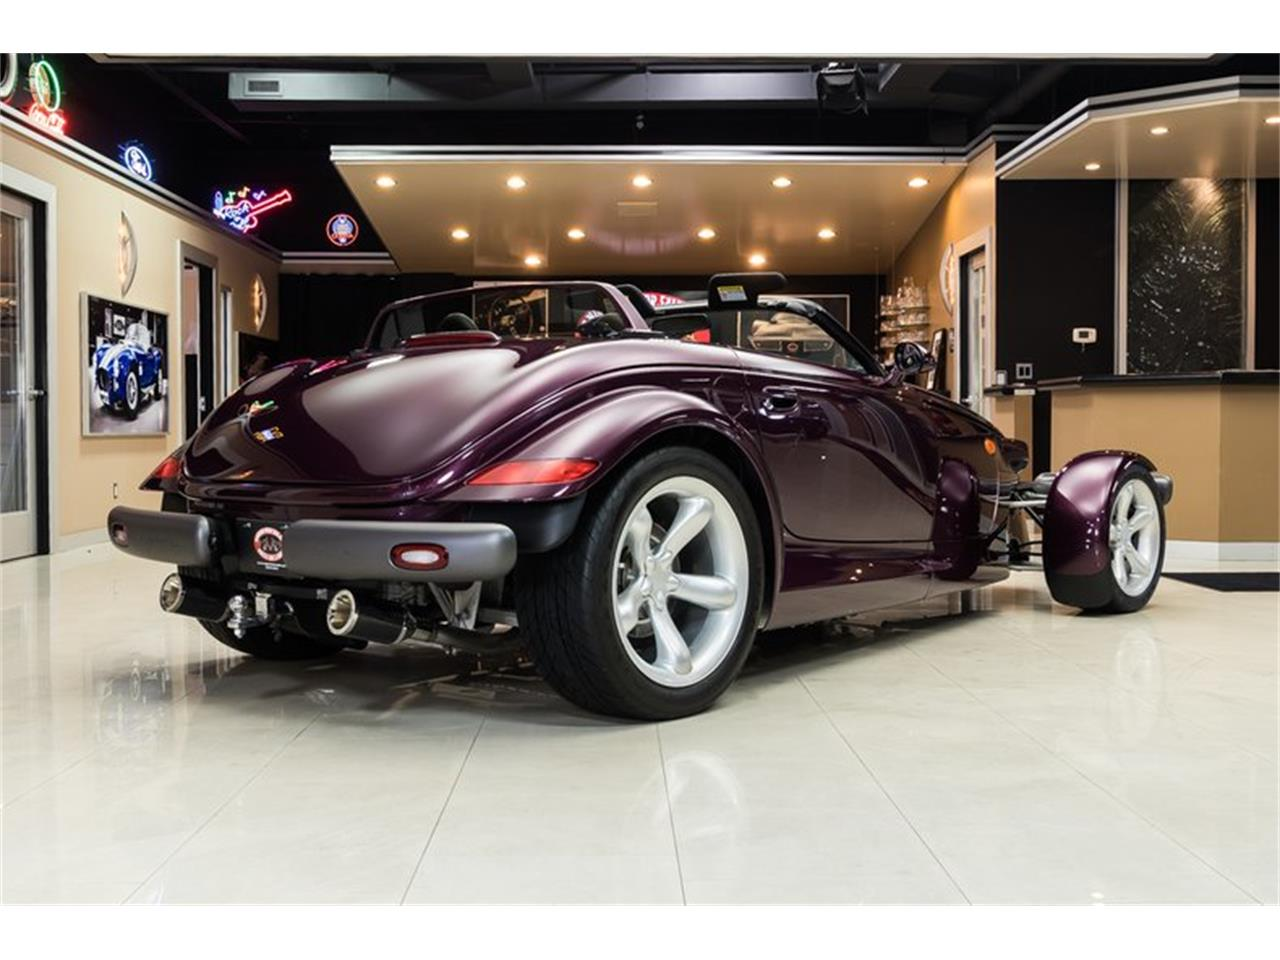 Large Picture of '97 Plymouth Prowler - $42,900.00 - PNI7